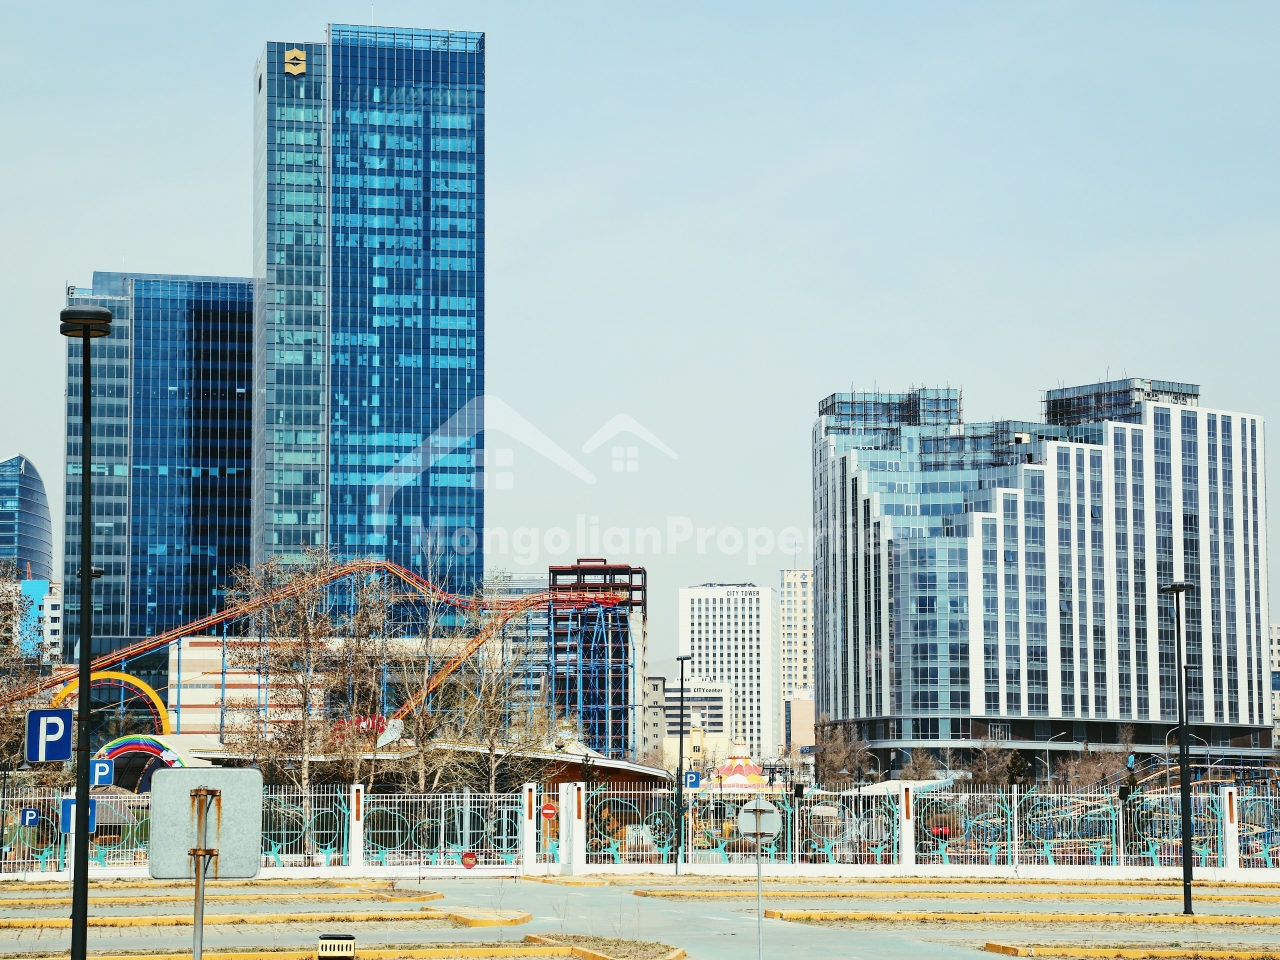 FOR SALE: Olympic Residence, 92.2sqm, 2 bedroom, 1.5bath. High floor. High ceiling. Incredible View to the Sukhbaatar Square